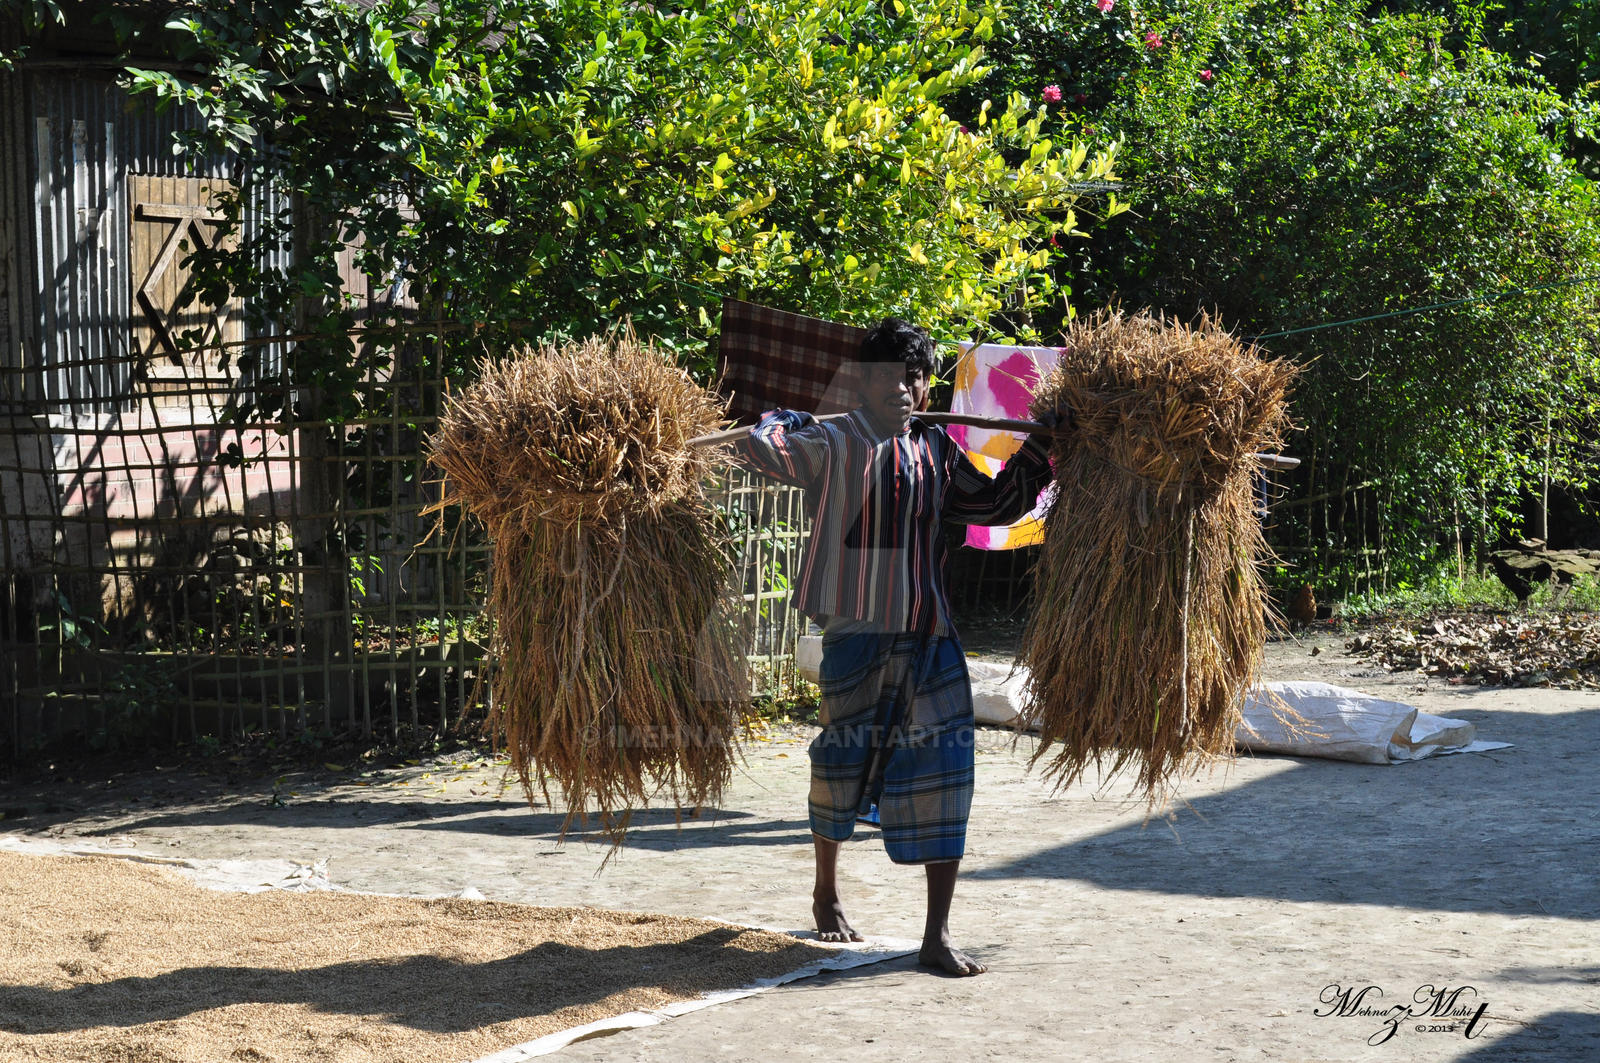 Man carrying rice plants [Bangladesh Series] by iMehnaz